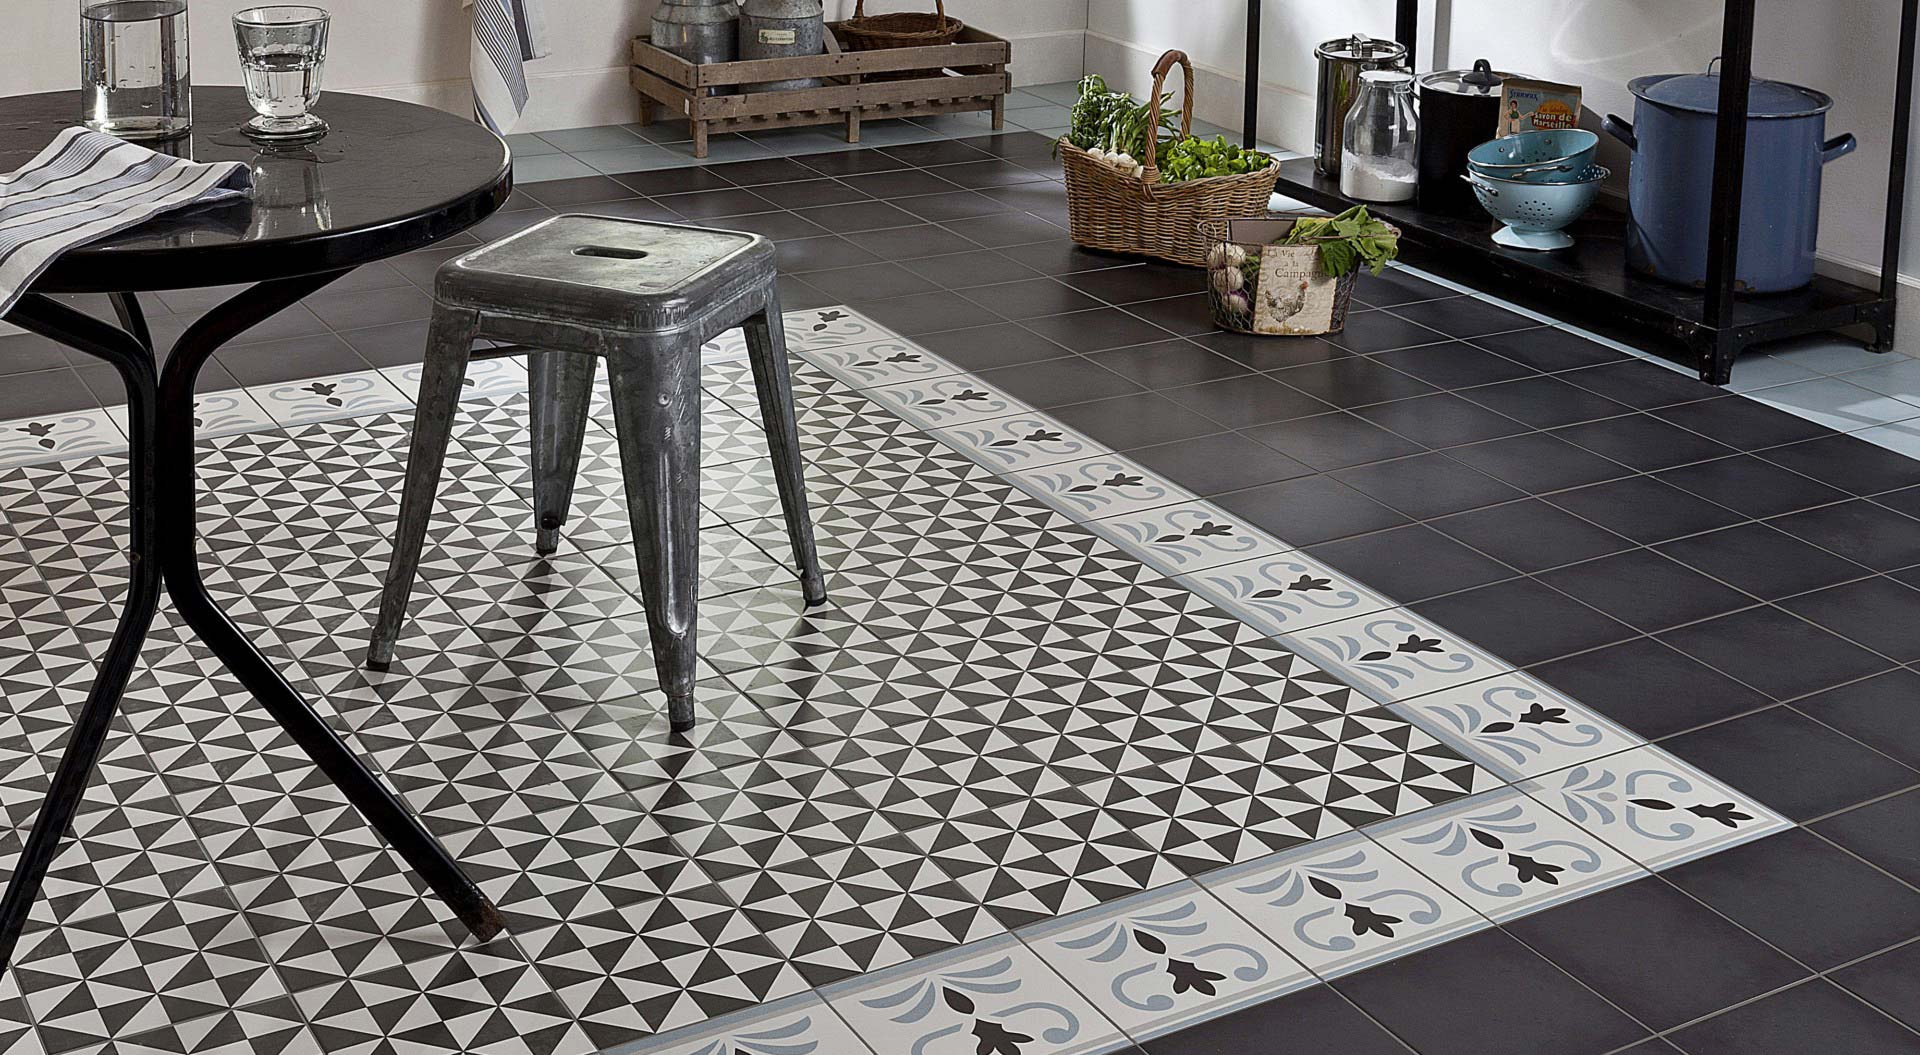 Tapis en carreaux ciment for Tapis cuisine imitation carreaux de ciment